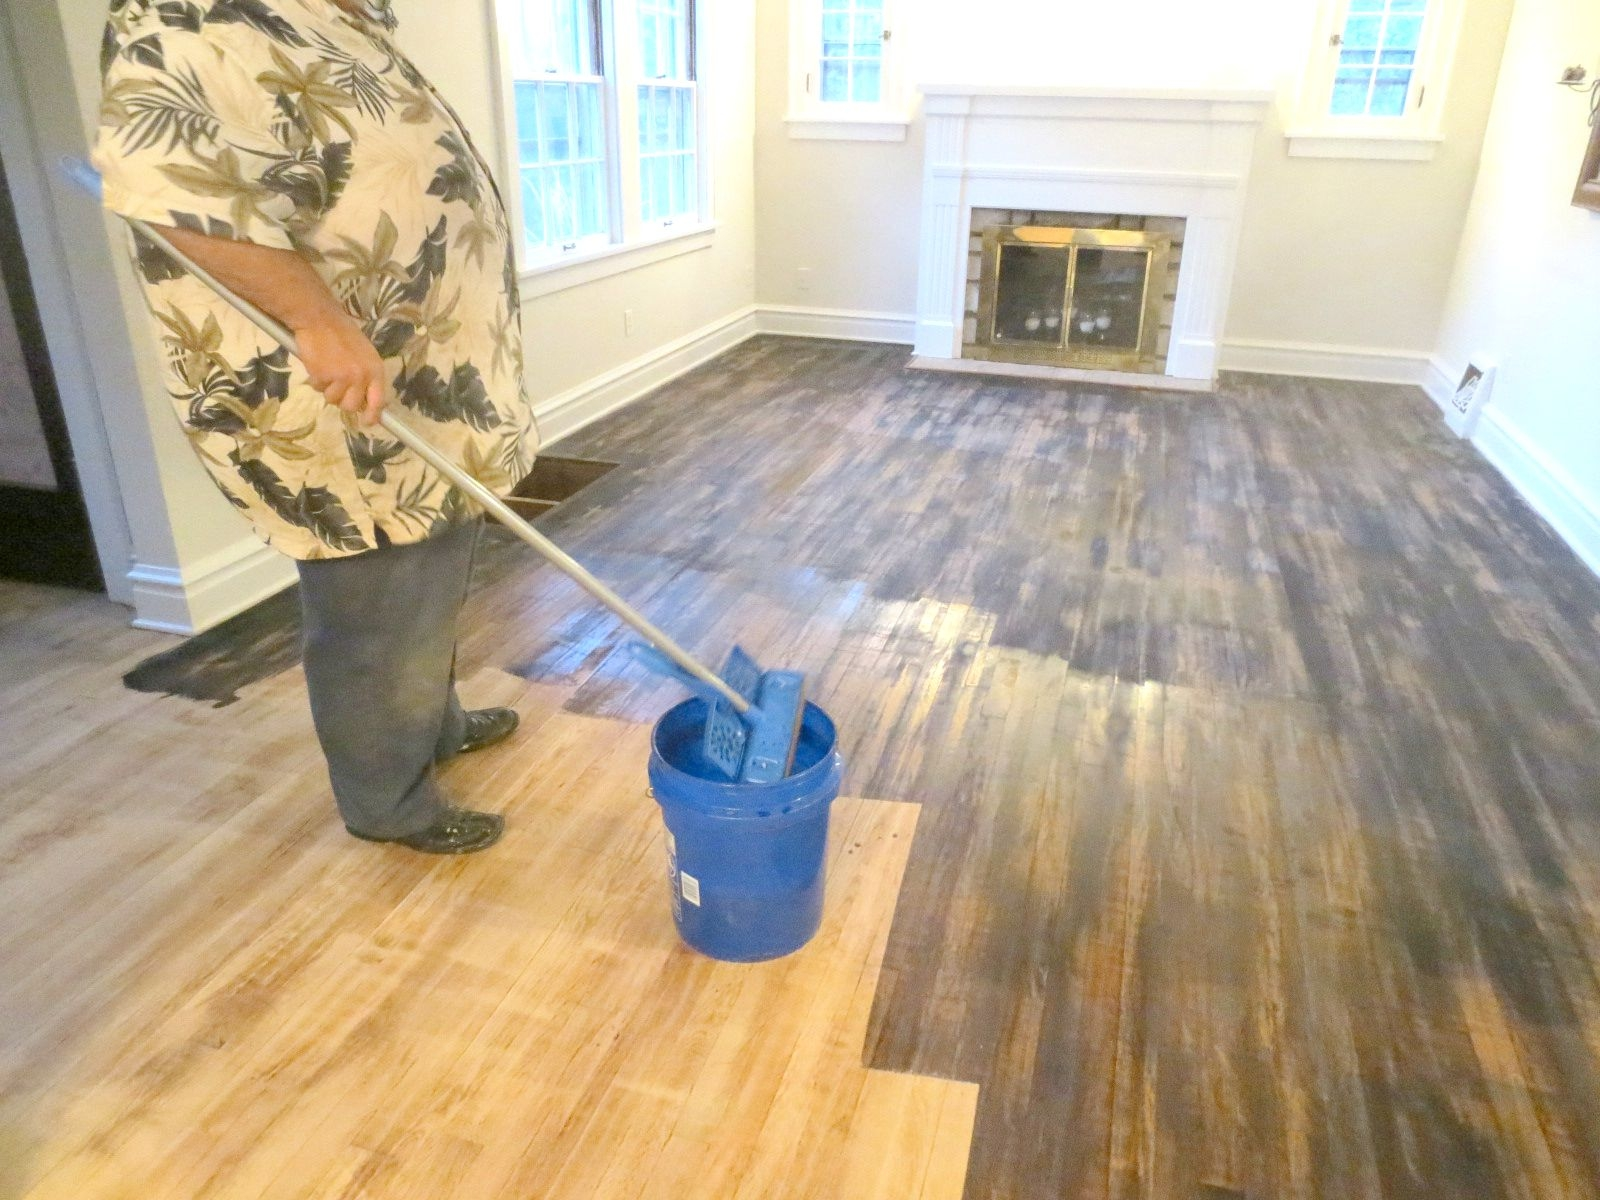 Stripping Wood Floors With Vinegar